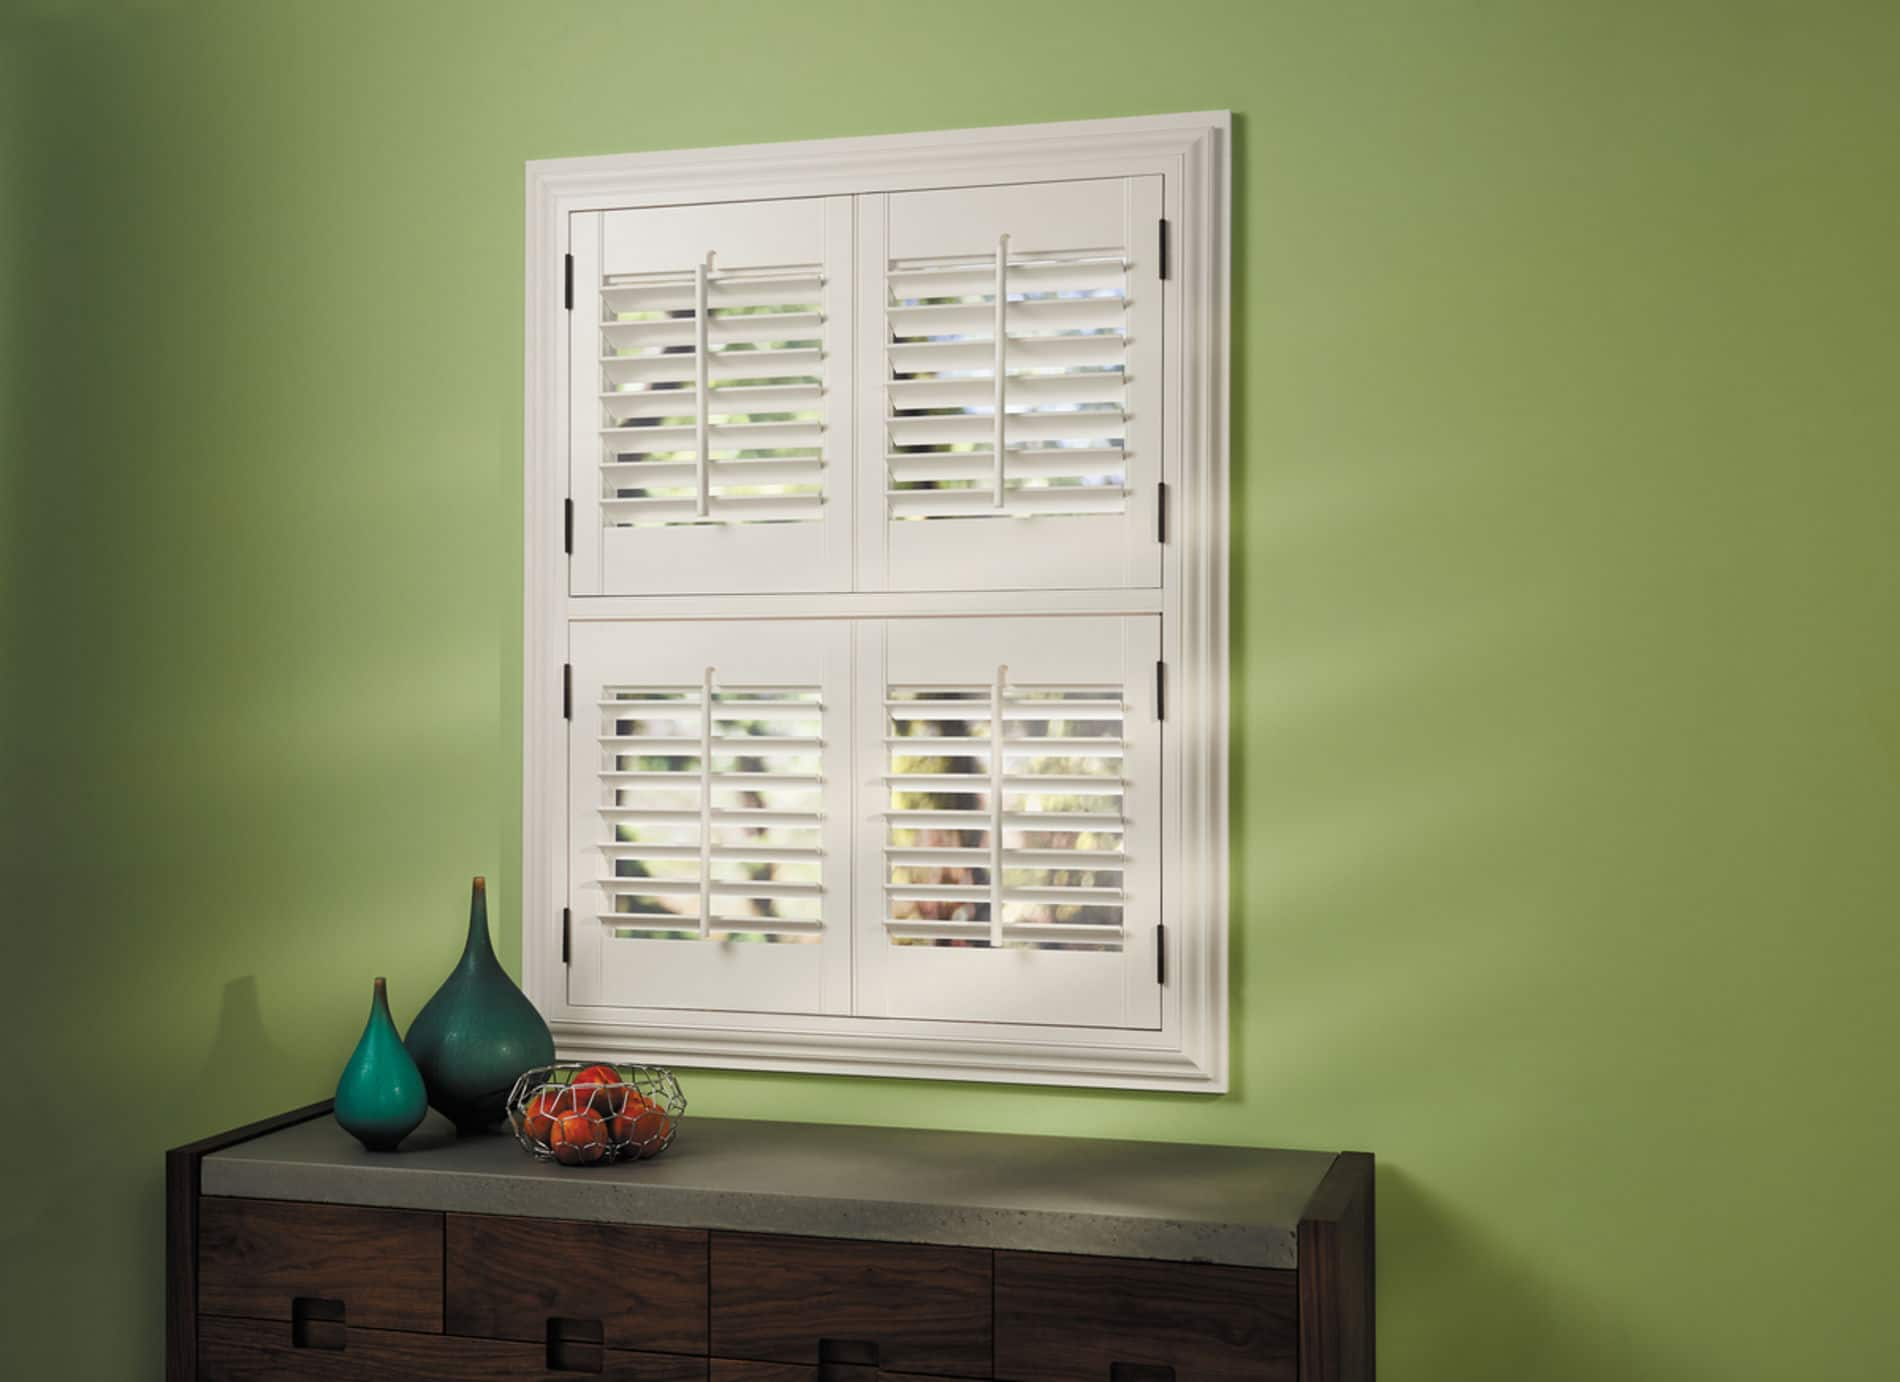 HunterDouglas by Shiretown Home Improvement Heritance Hardwood Shutters, Fabric/Material: Hardwood